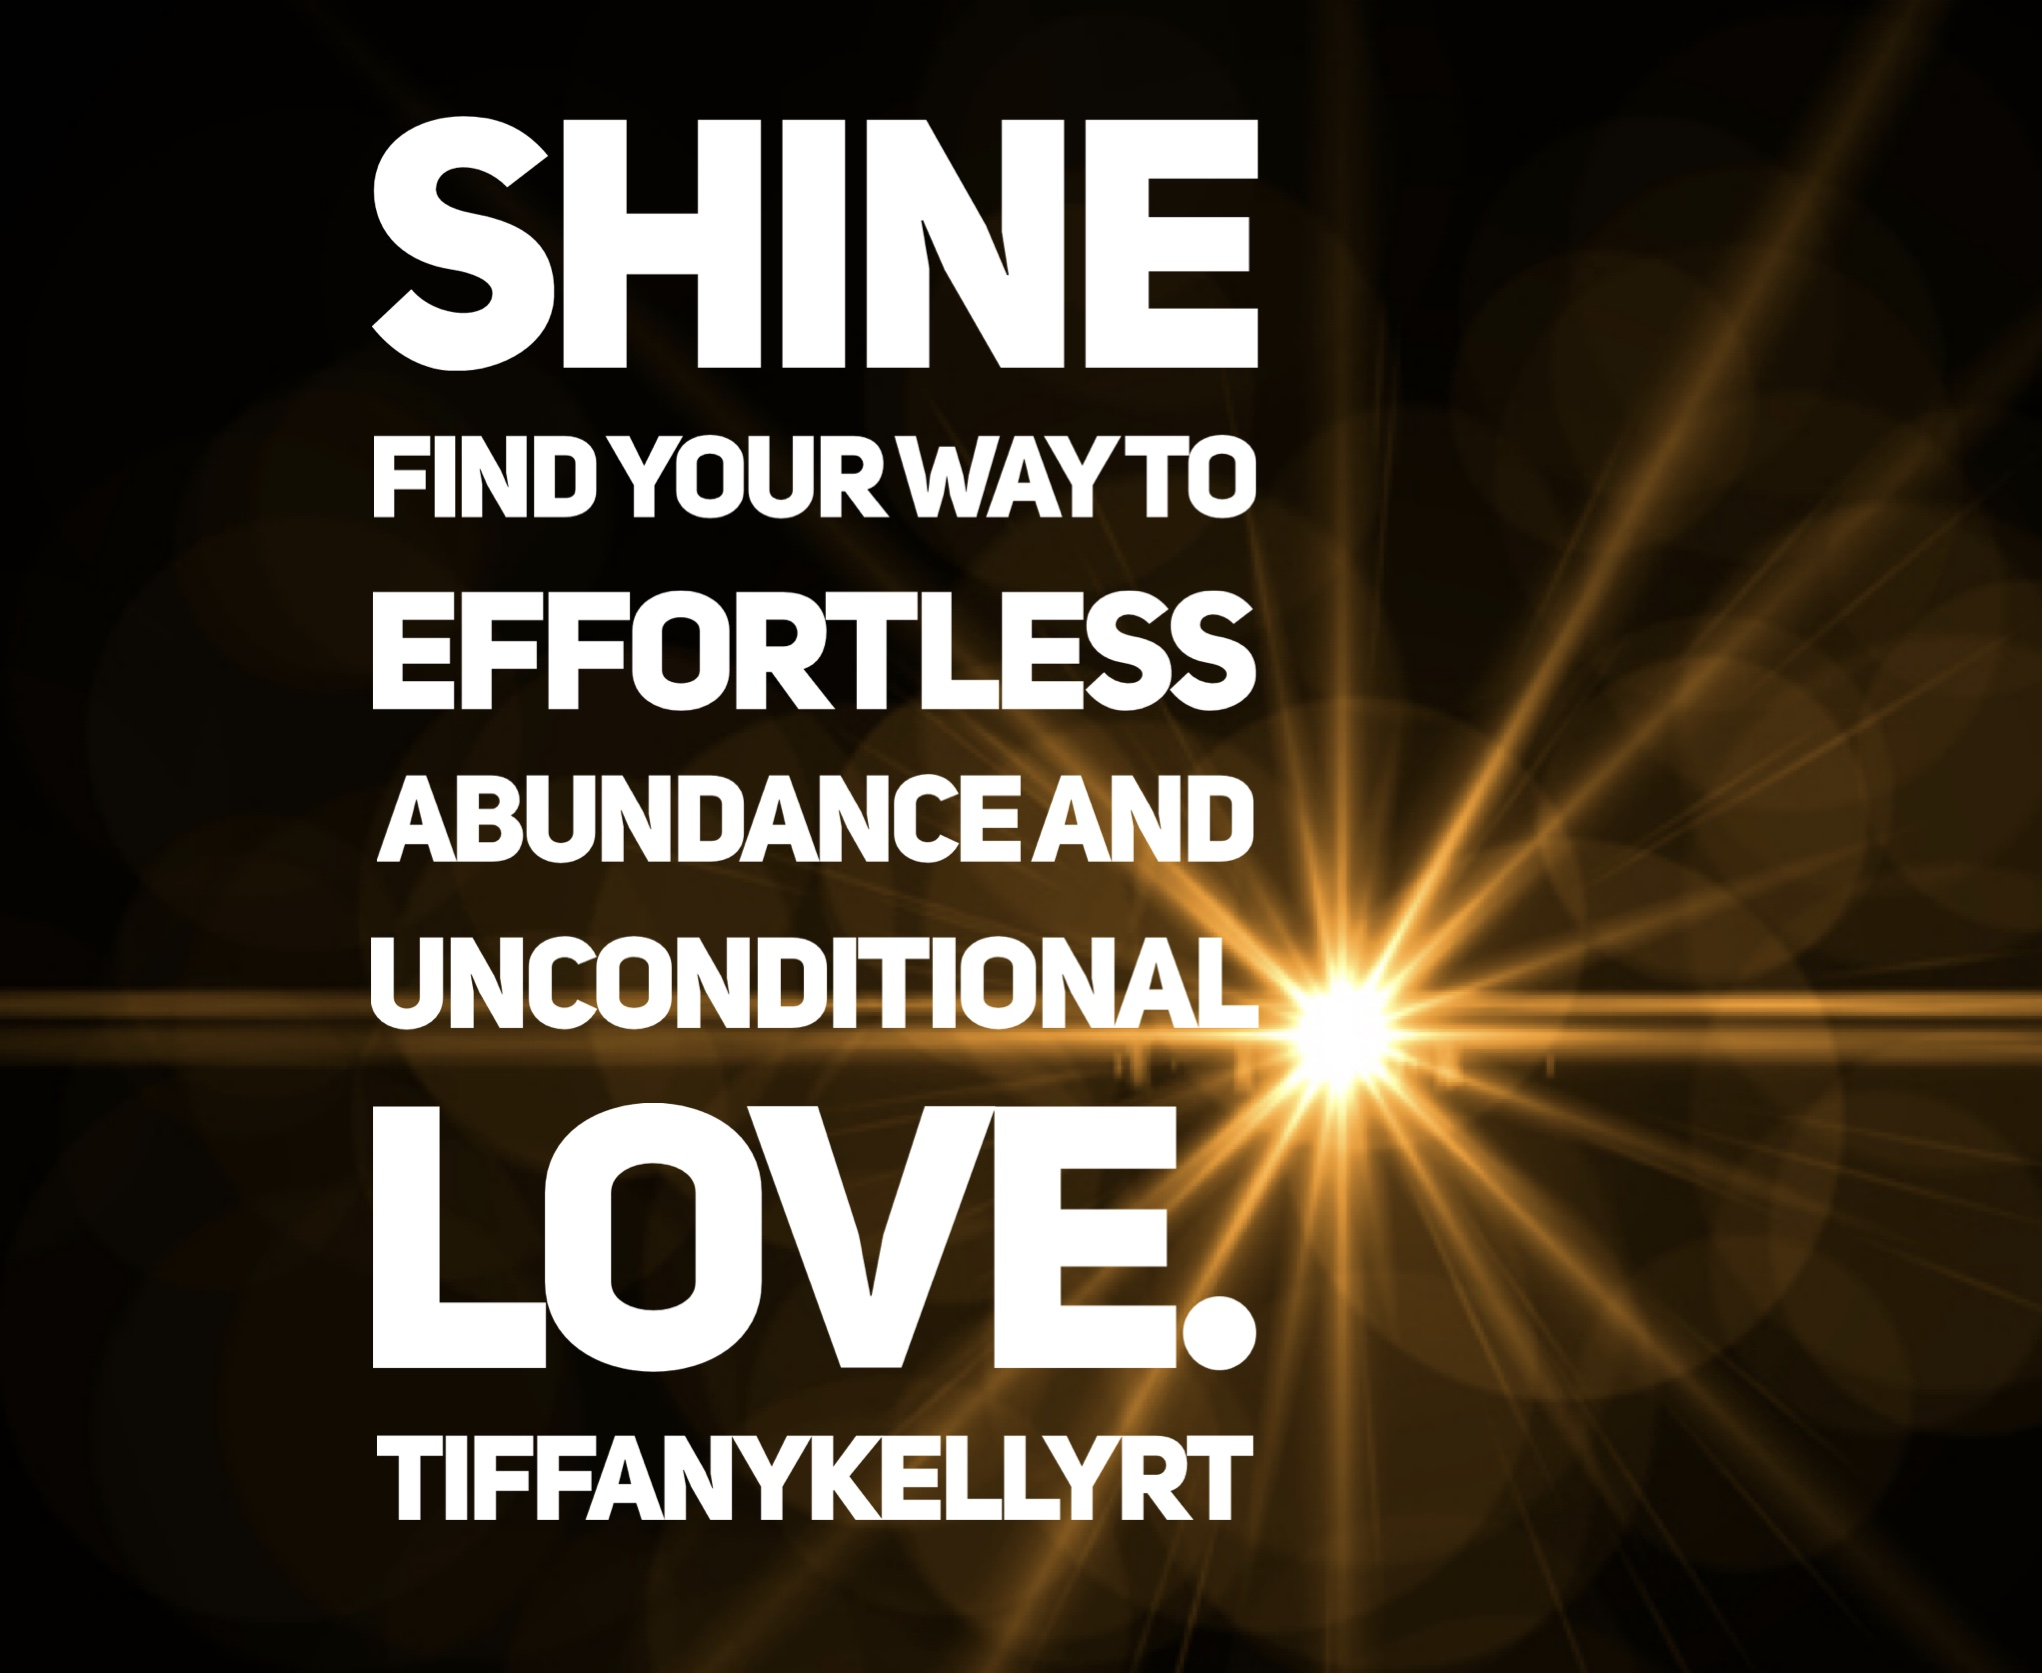 Shine Effortless Abundance and Unconditional Love